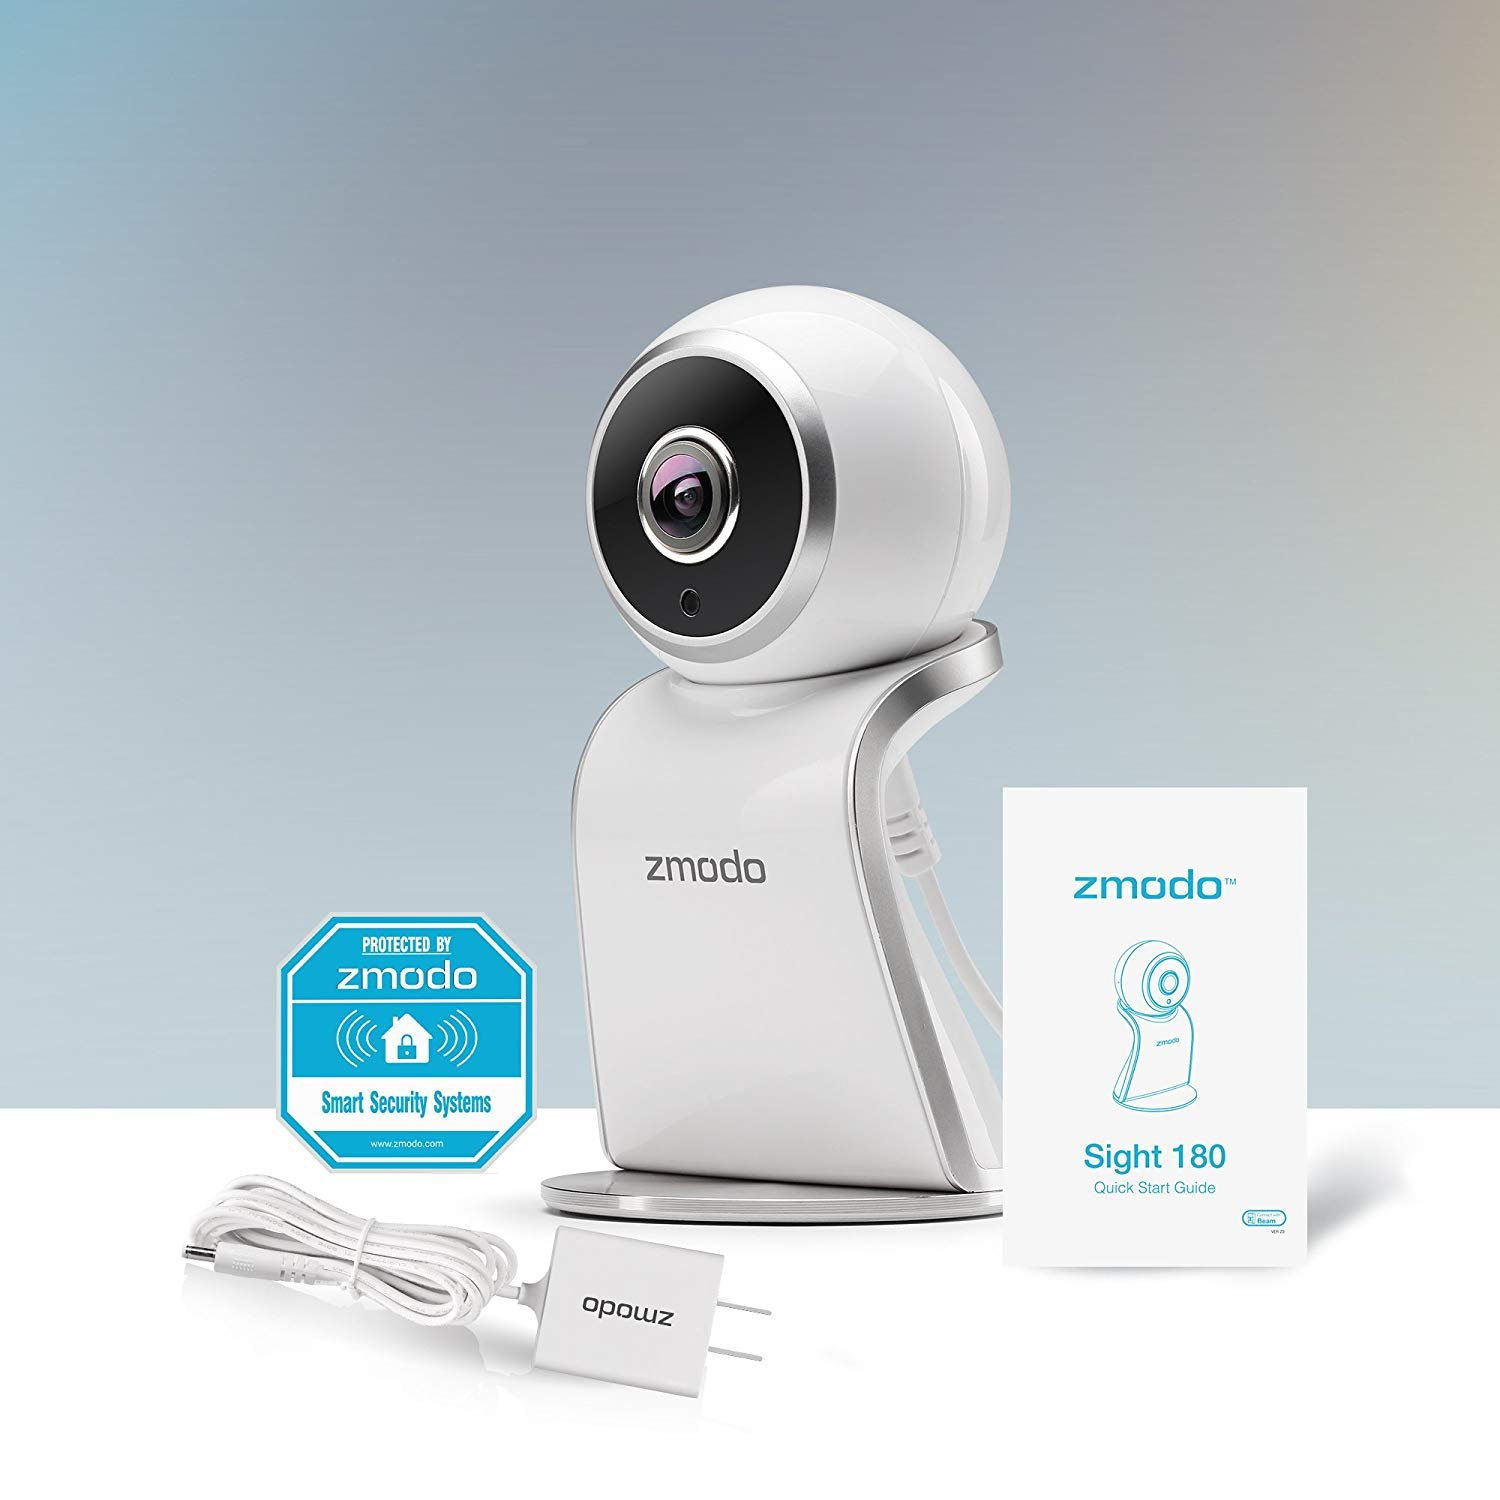 Zmodo Sight 180 Home Security Camera, Full HD 1080p Wireless Indoor IP Camera System with 180 Degree Viewing Angle, Two Way Audio, Night Vision, Motion Detection, Compatible with Alexa - 2 Pack by Zmodo